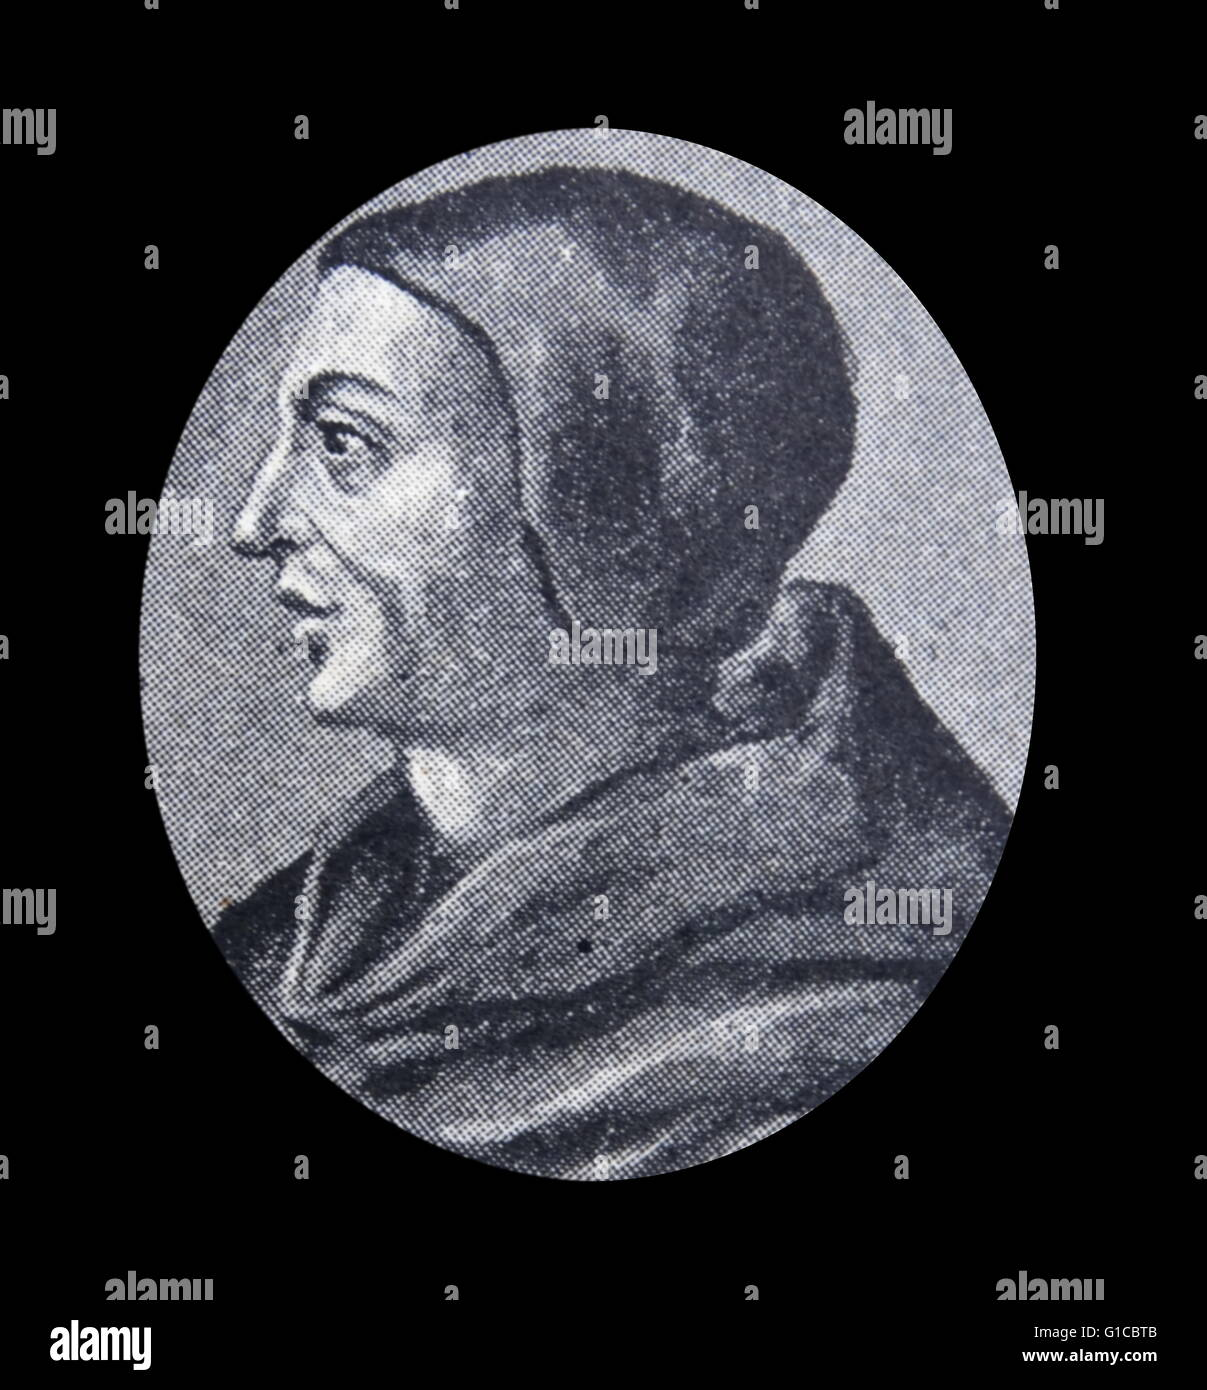 Portrait of Duns Scotus, philosopher-theologians of the High Middle Ages. Dated 12th Century - Stock Image